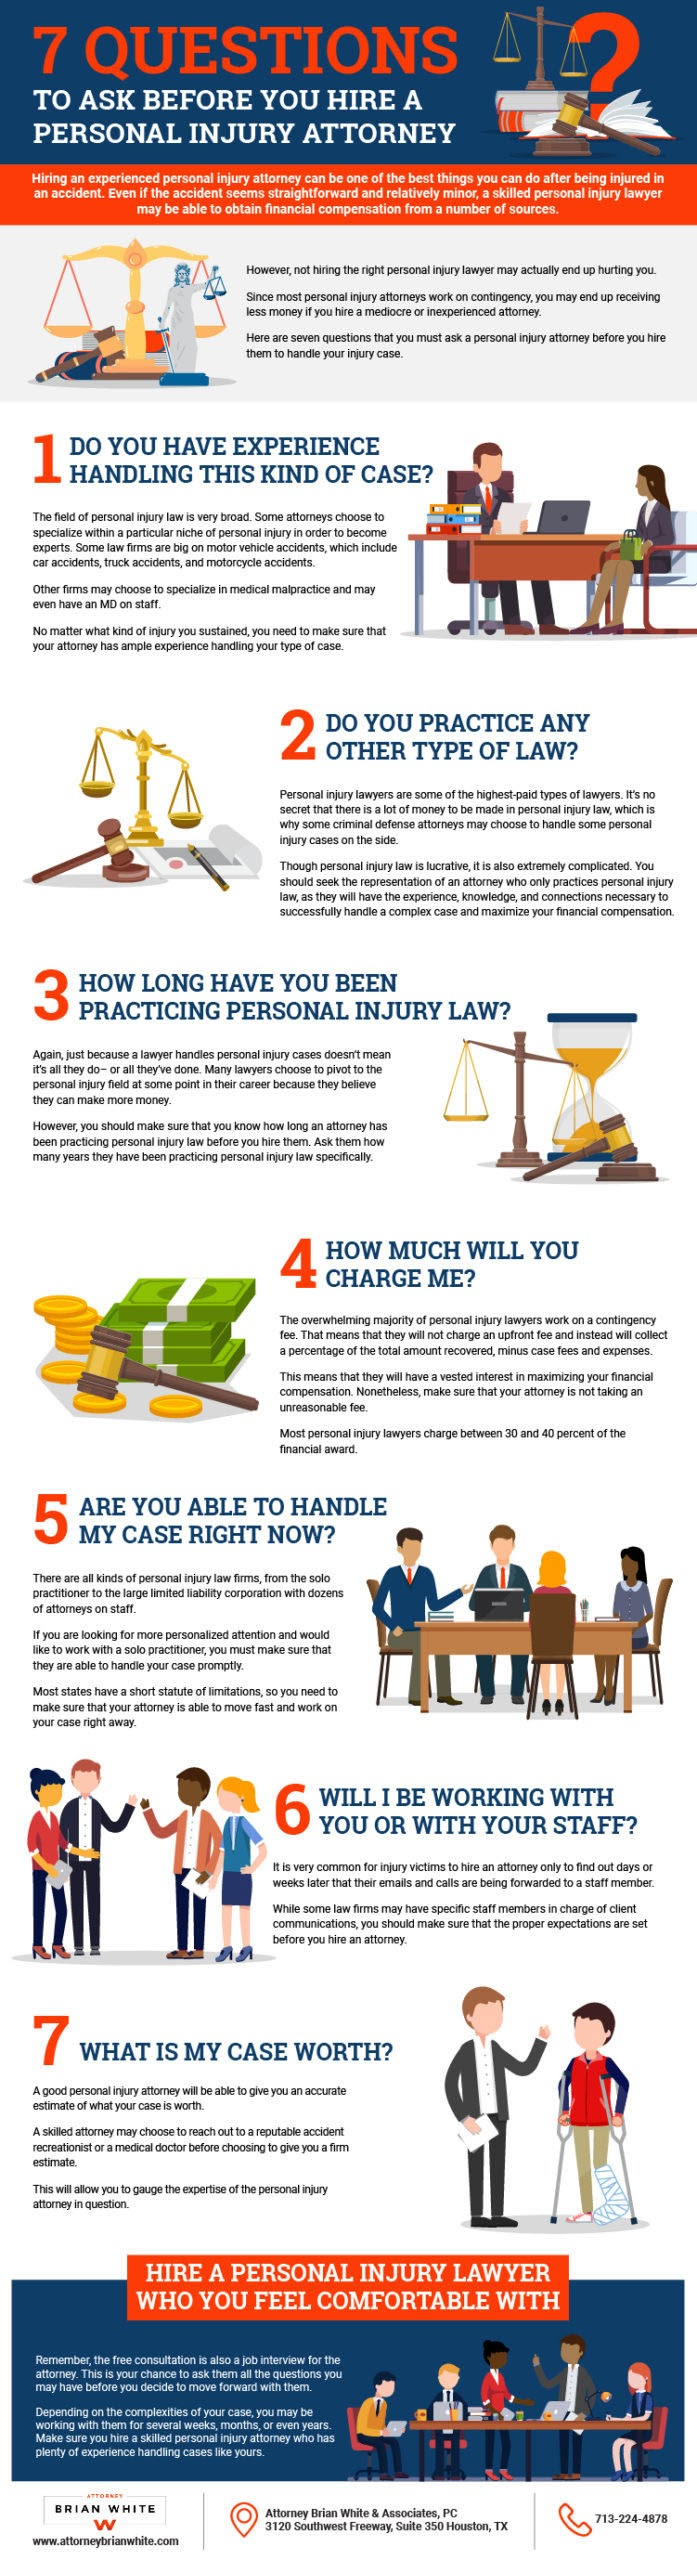 7 Questions to Ask Before You Hire a Personal Injury Attorney #infographic